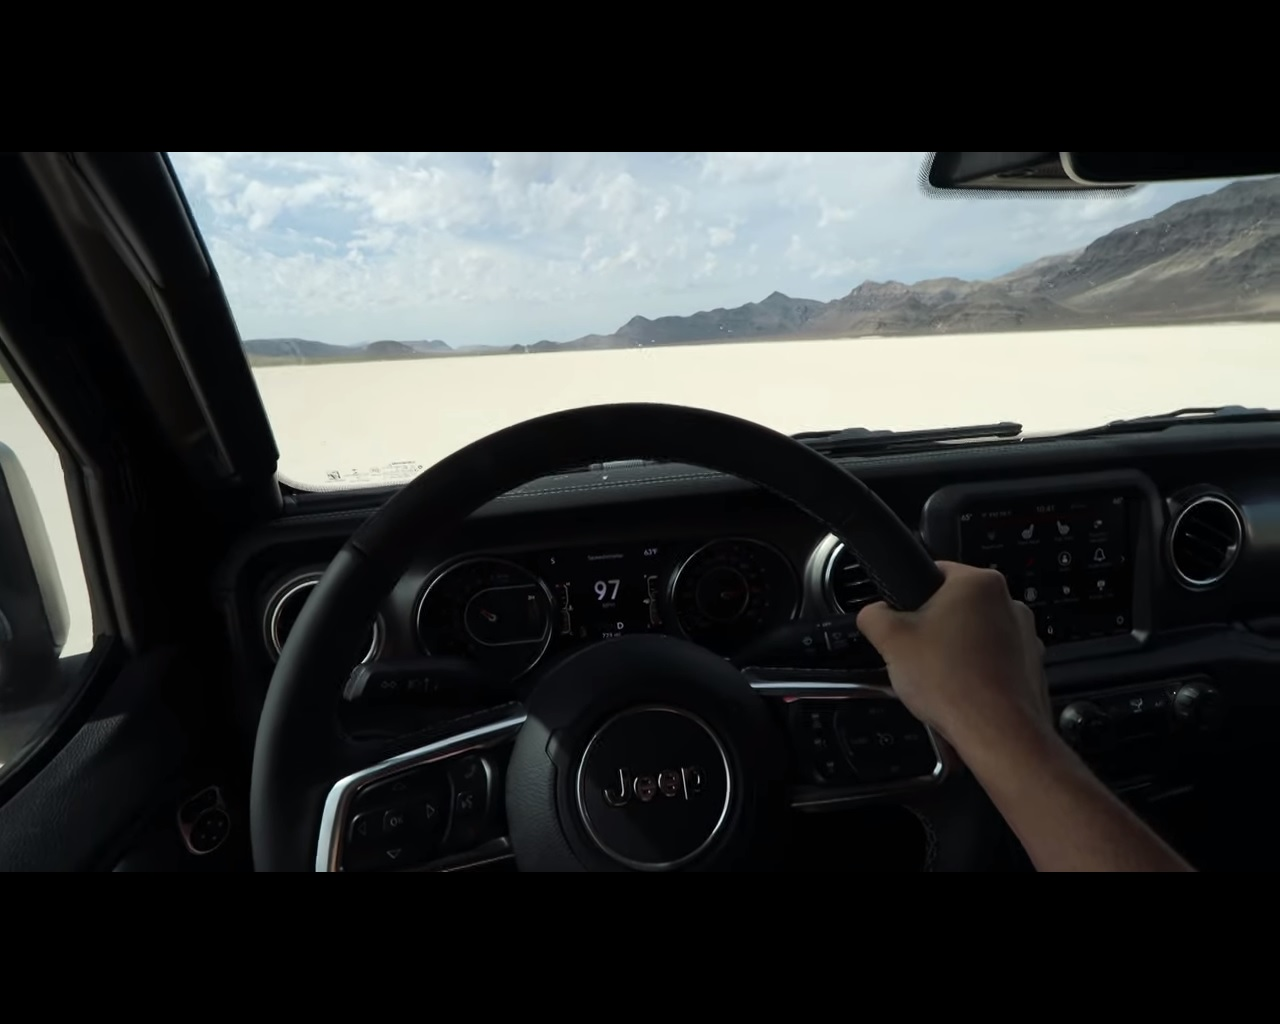 2020 Honda Rebel Top Speed.2020 Jeep Gladiator Top Speed Run Ends At 97 Mph Autoevolution